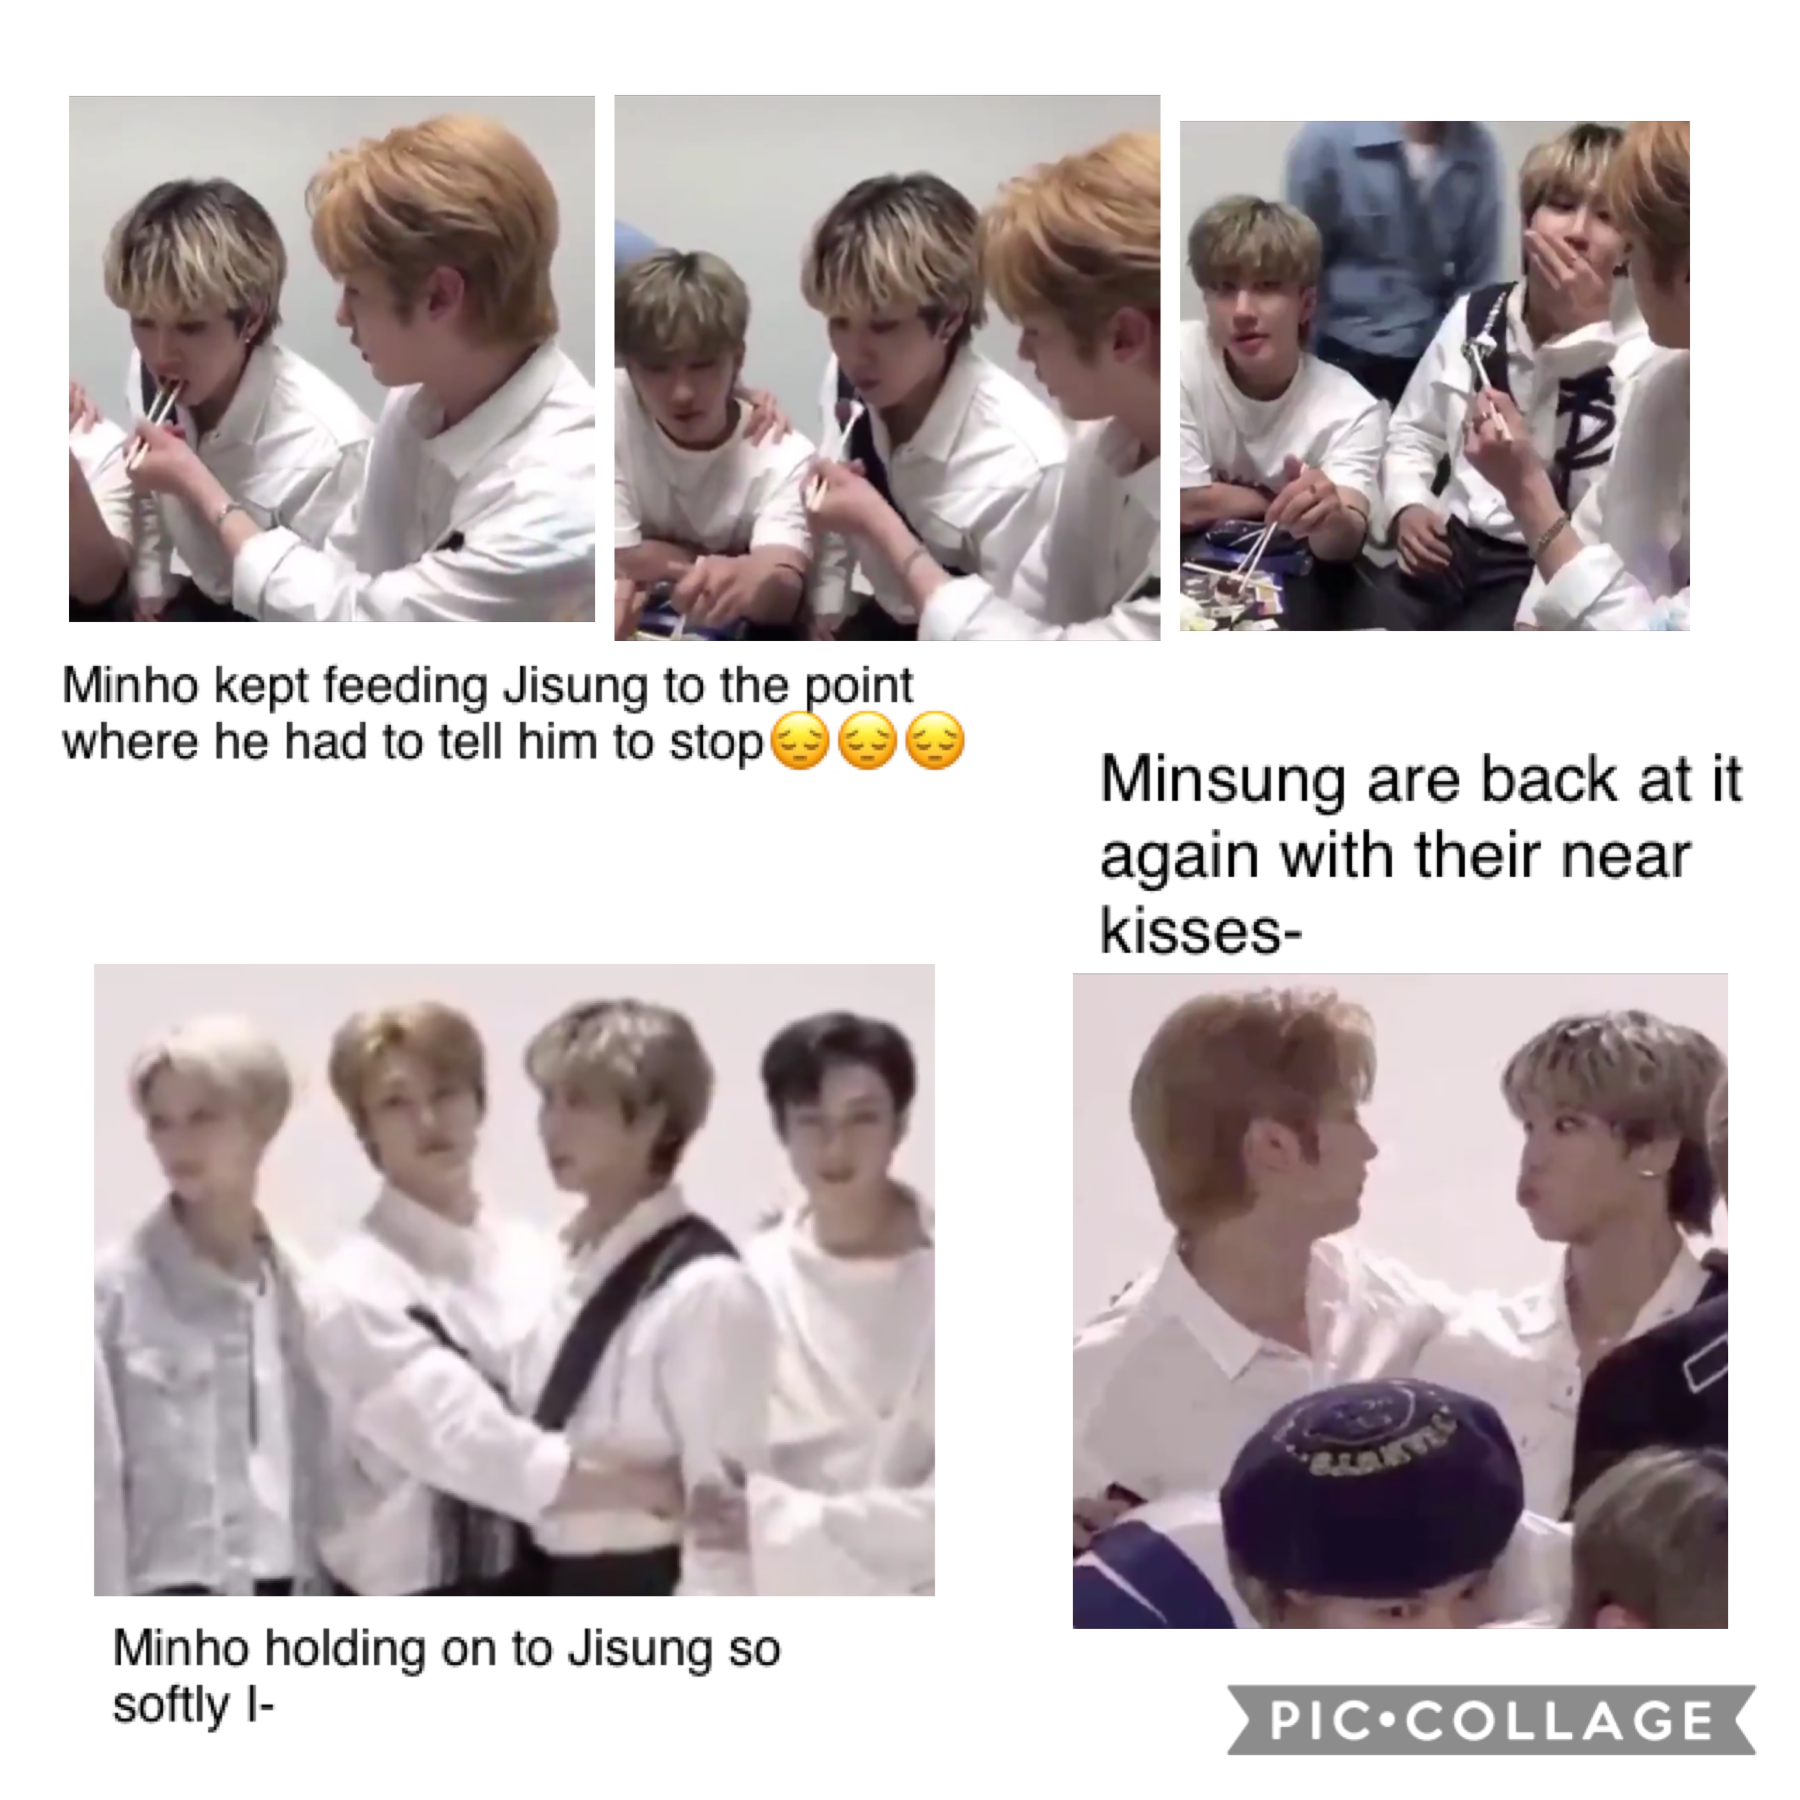 This live was had Minsung written all over it I-😔😔